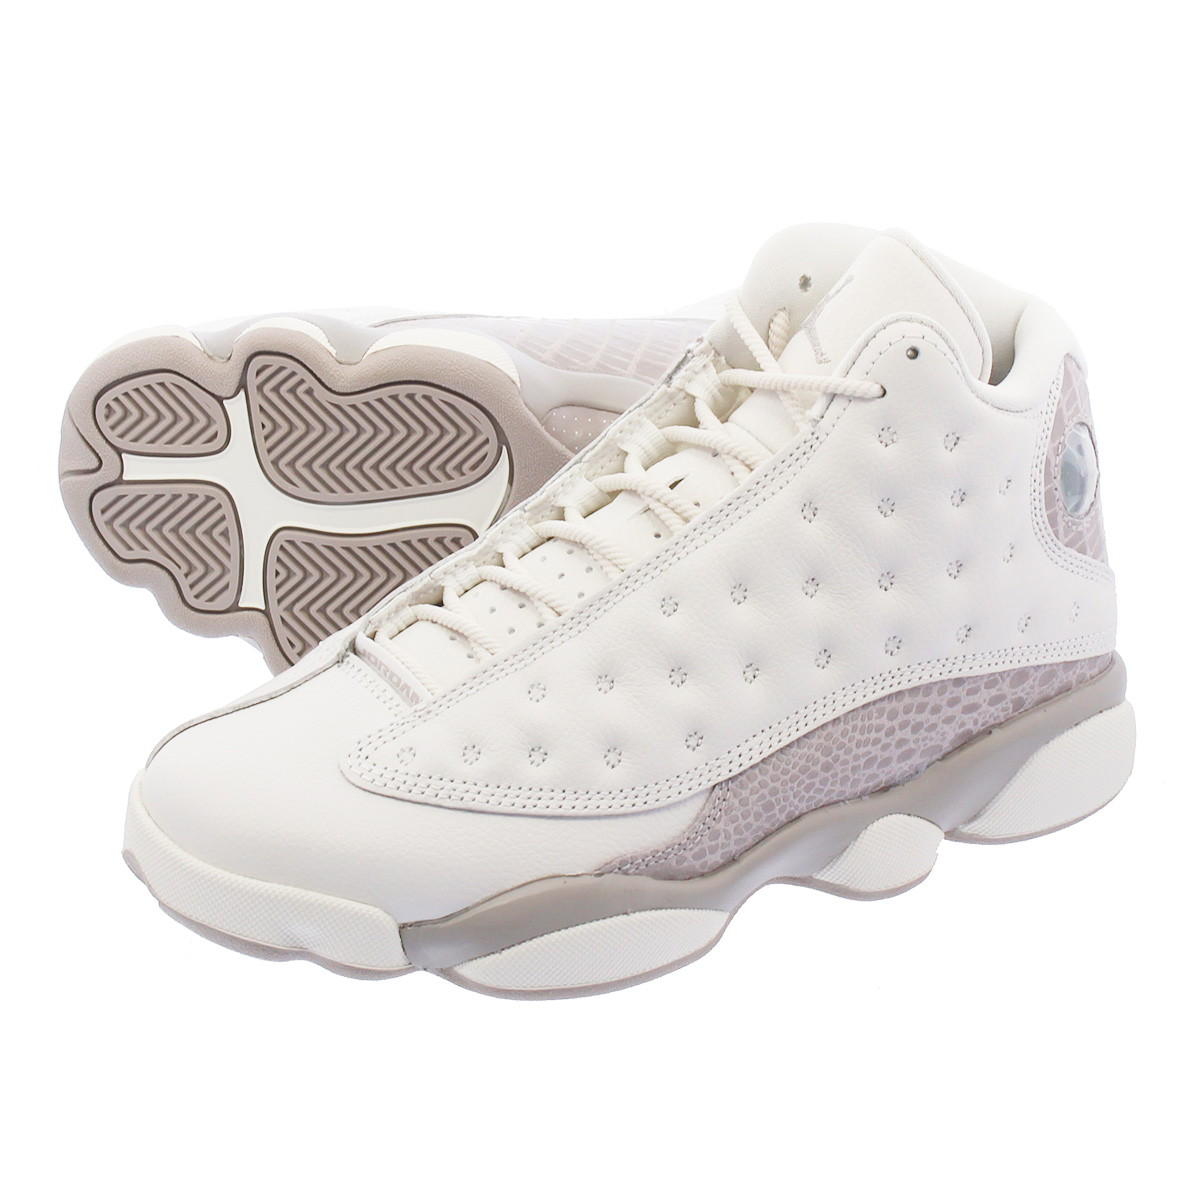 size 40 arrives arriving NIKE WMNS AIR JORDAN 13 RETRO Nike women Air Jordan 13 nostalgic  PHANTOM/MOON PARTICLE aq1757-004